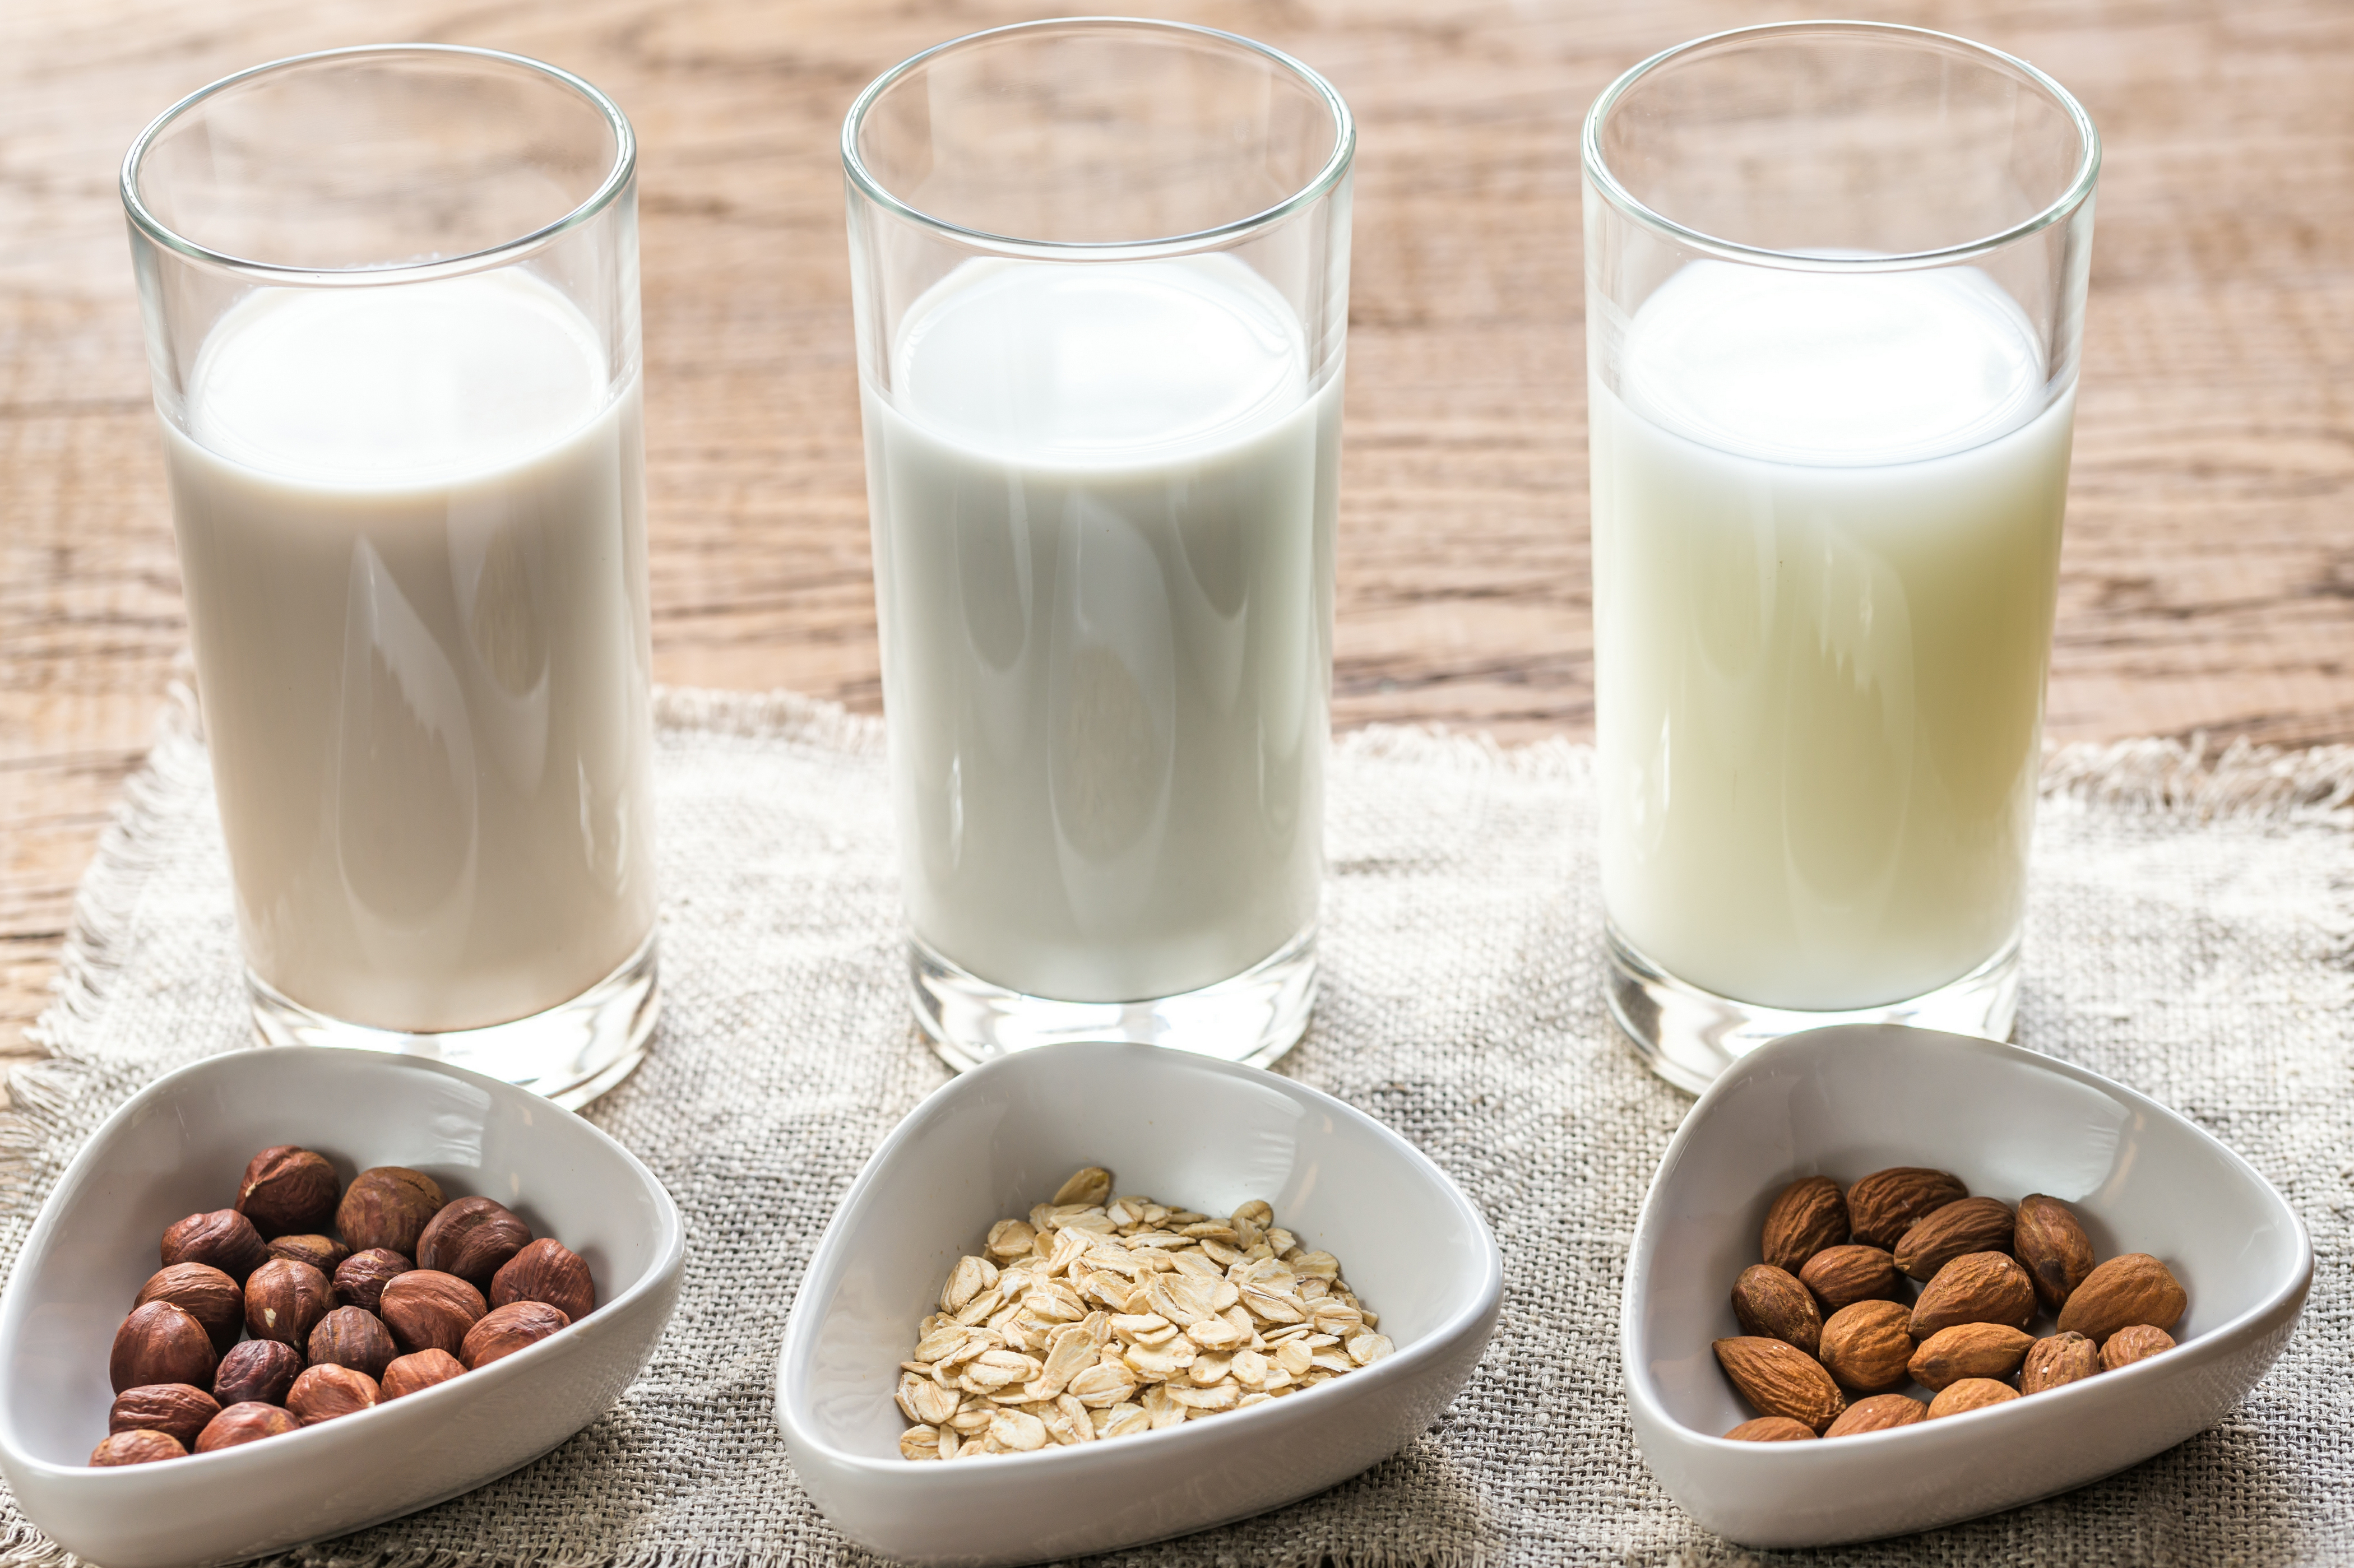 The Dairy Industry Takes on Alternative Milks